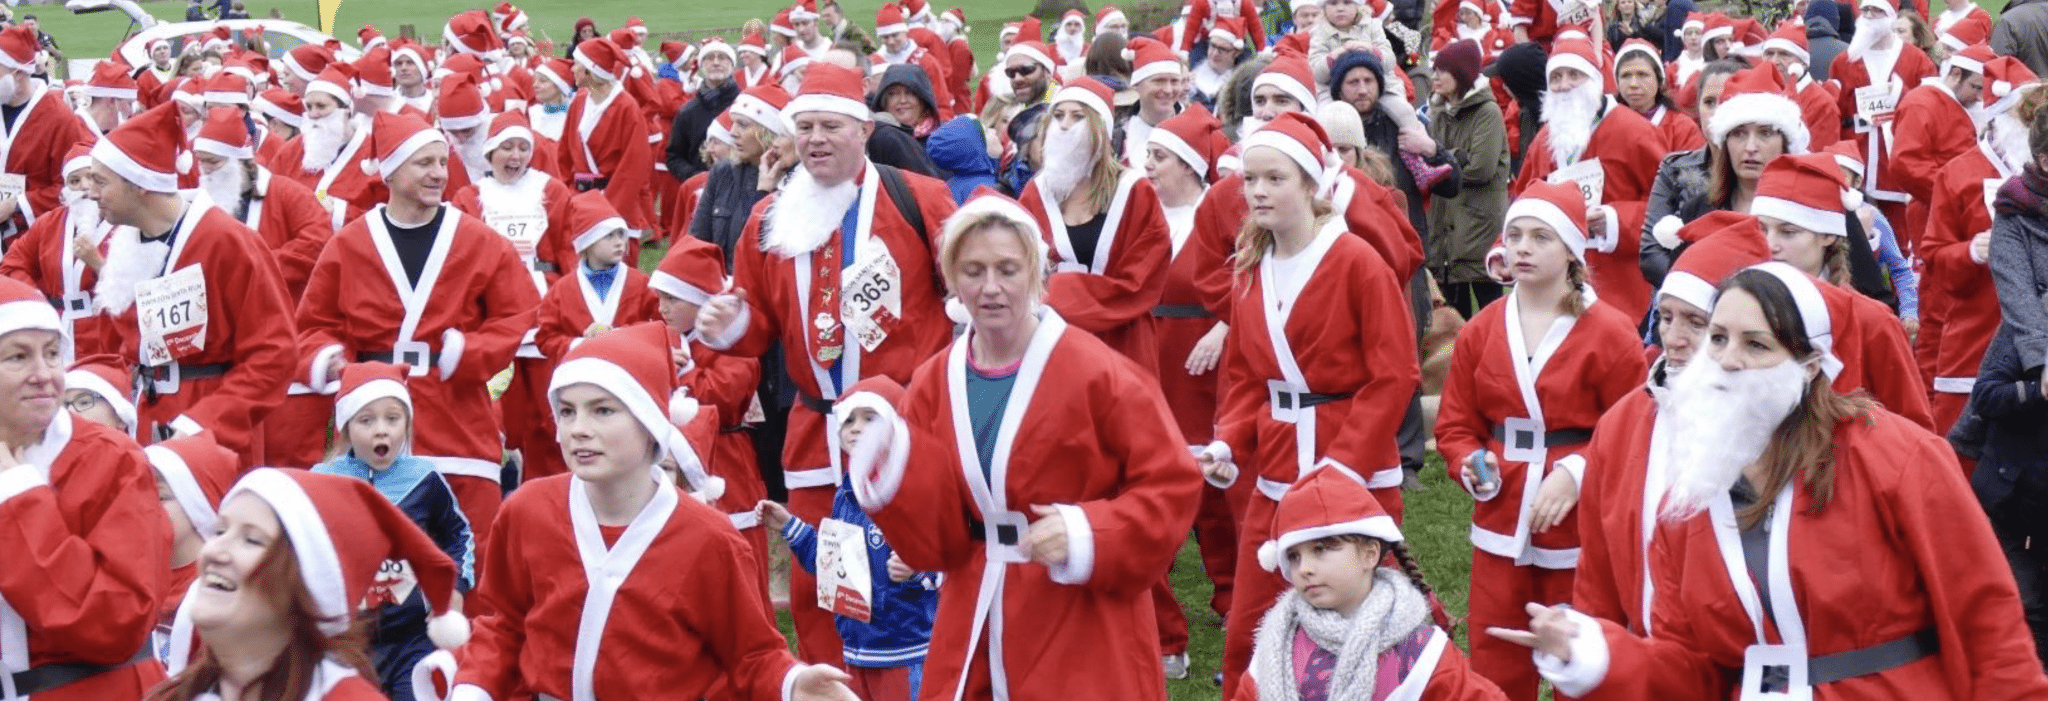 Sign up to join a gaggle of Santas